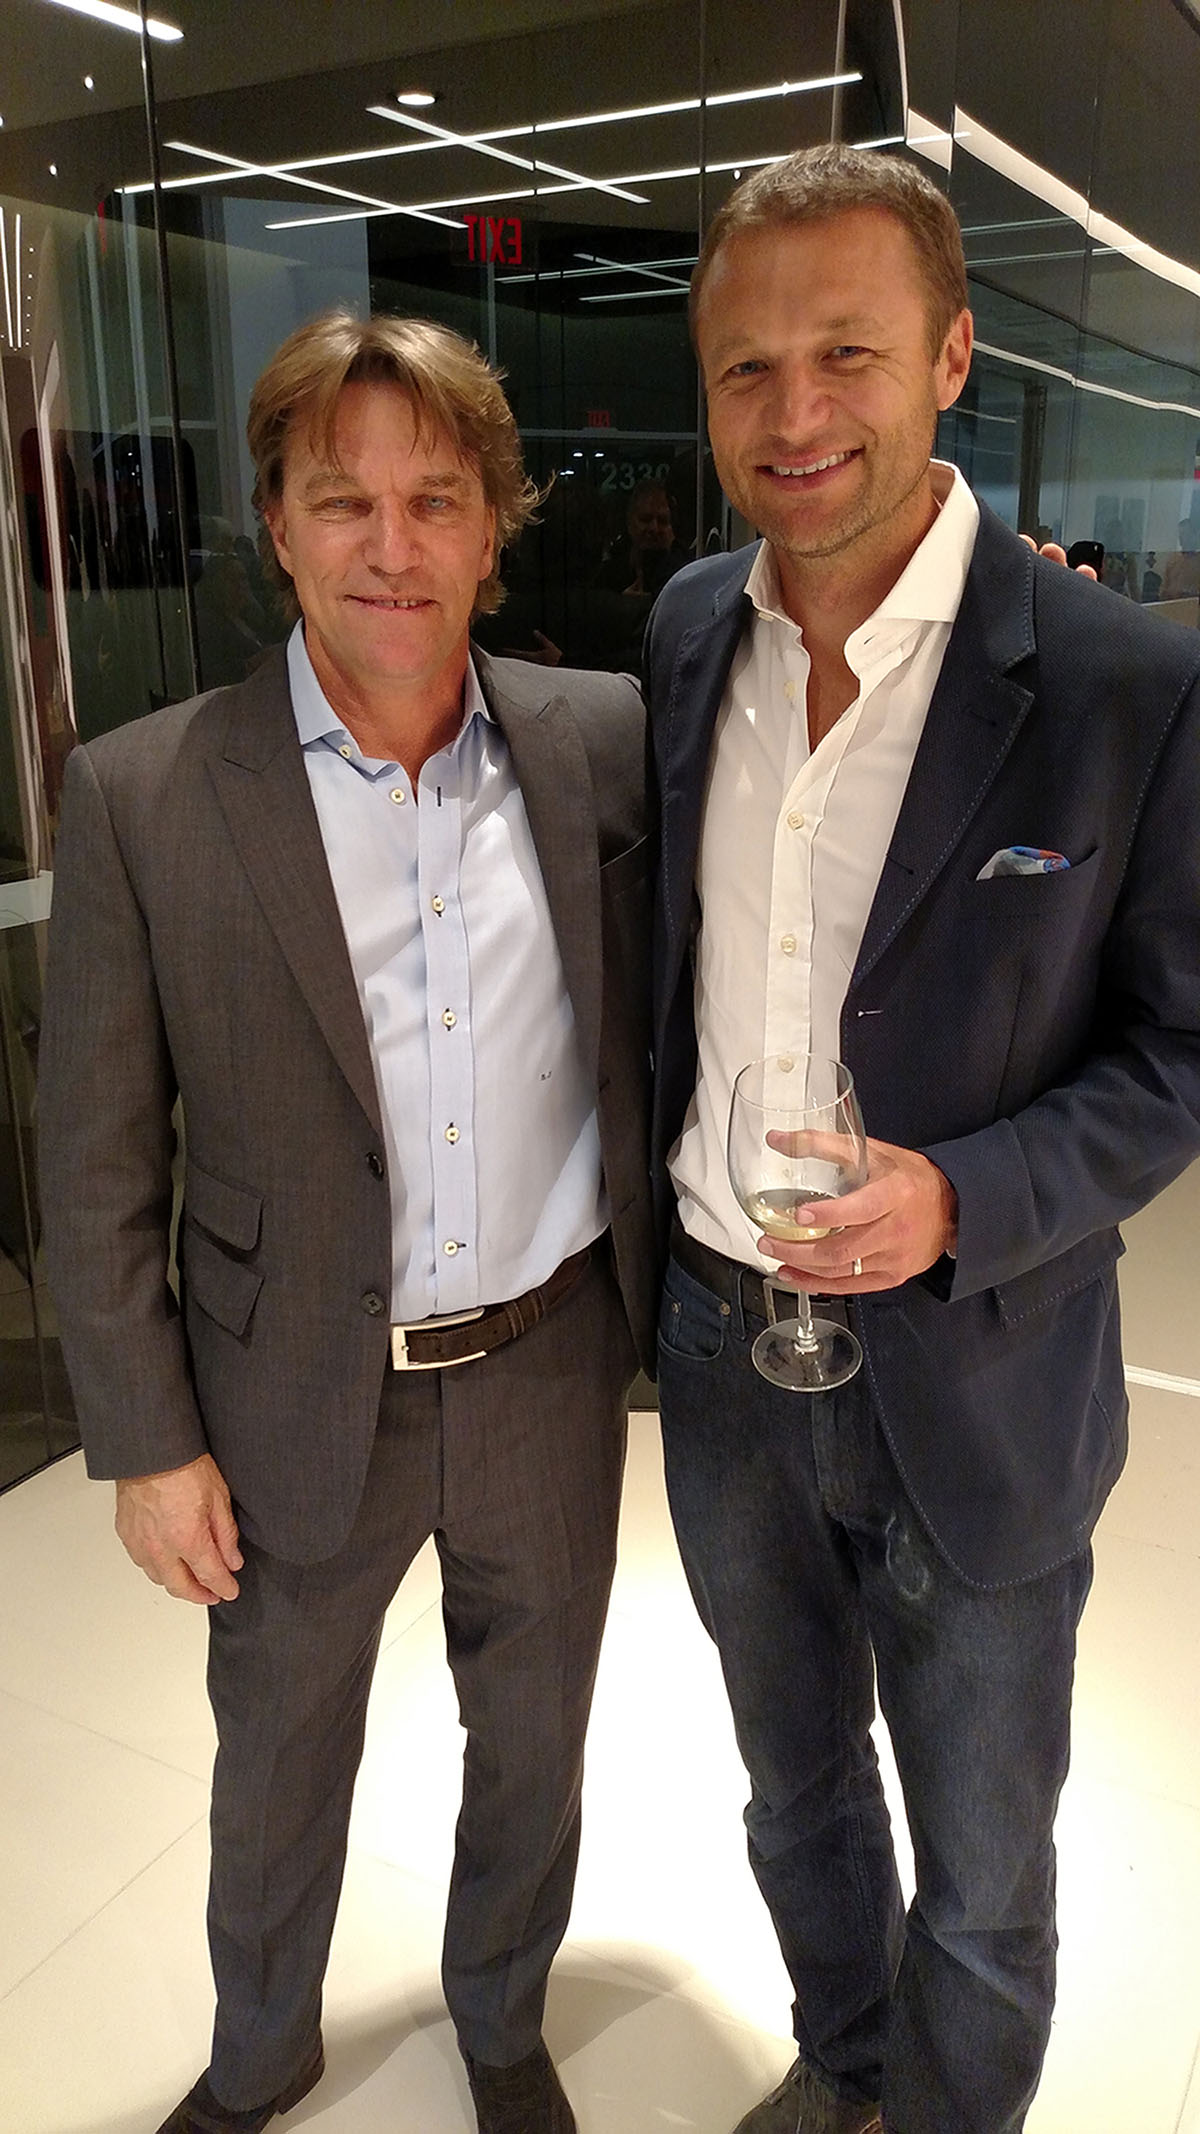 Stefan Johansson and Townsend Bell, Photo by Randy Evans for Jephoto